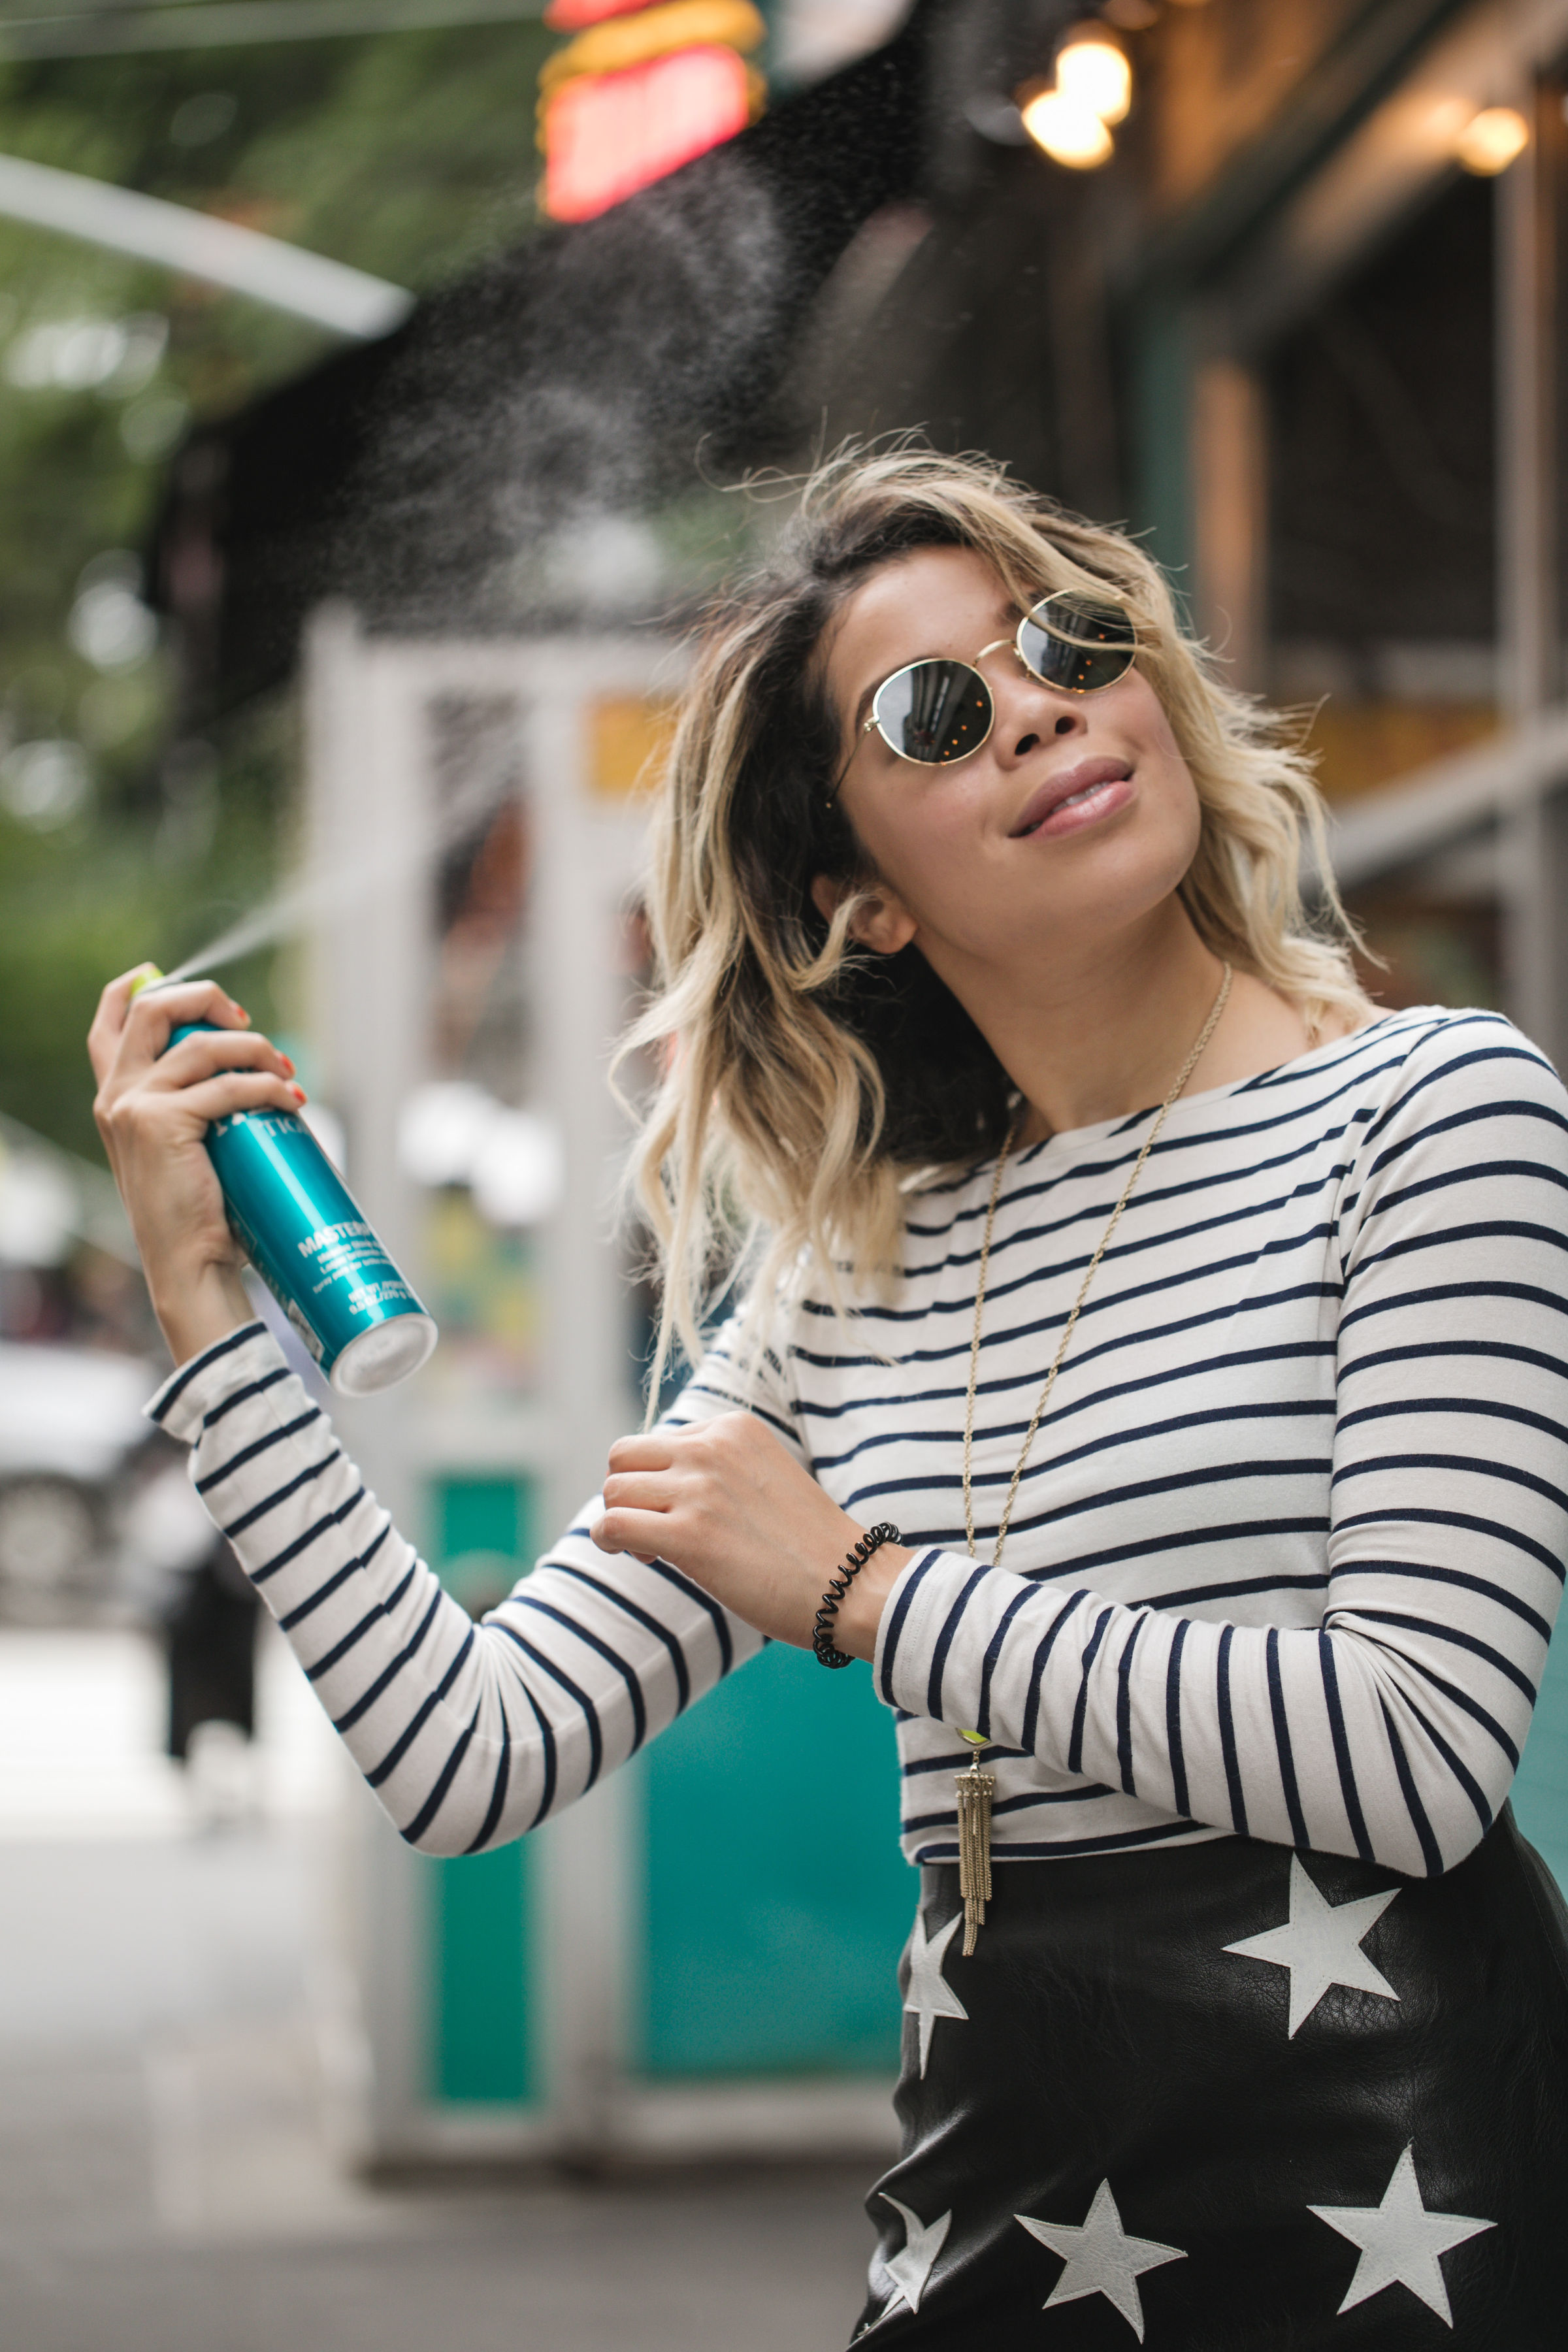 aileen olmedo new york city beauty blogger best hair products for waves curly hair